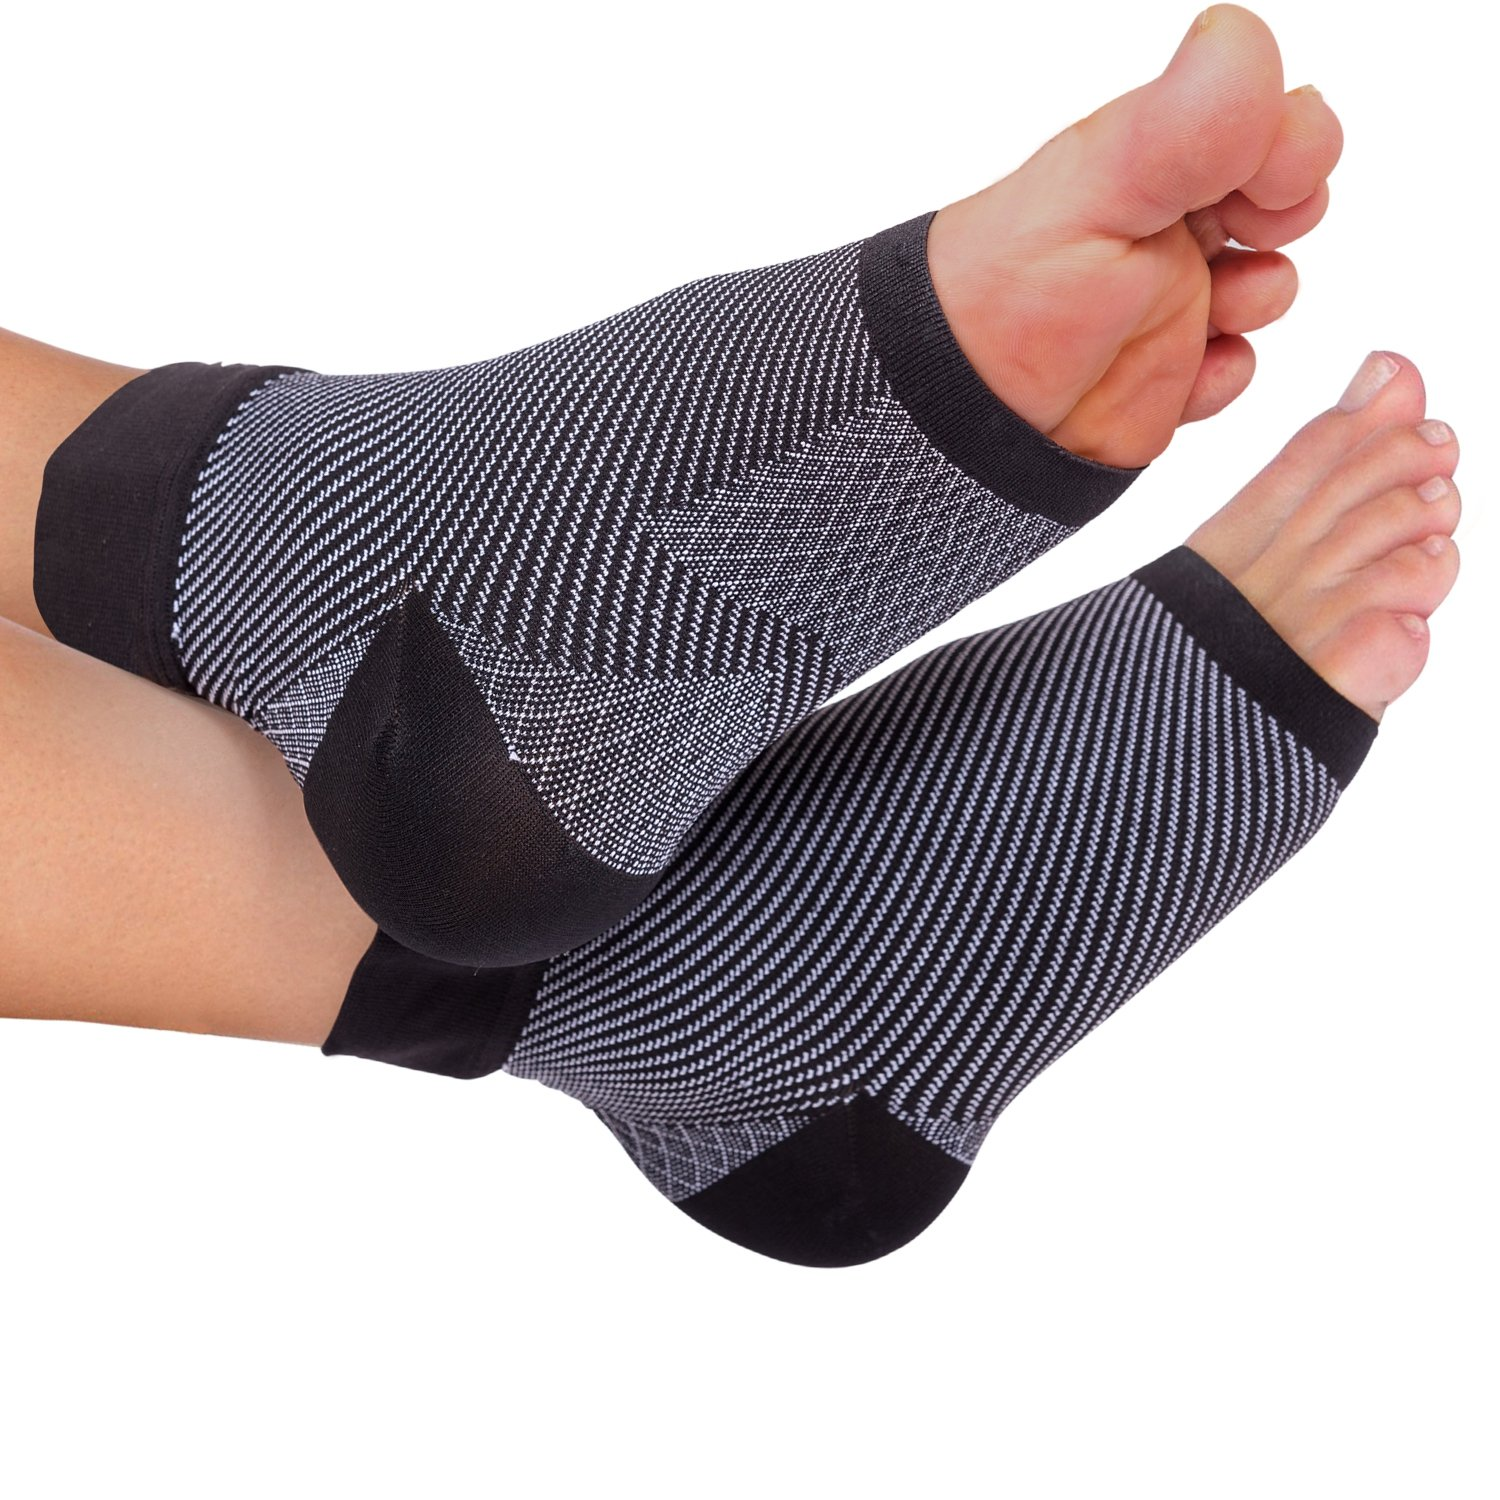 Plantar Fasciitis Compression sleeves - Better than Night Splint Socks, Shoe, Insoles, Inserts & Orthotics for Foot, Ankle Pain Relief for men, women, nurses, maternity, pregnancy, running & heel spur by Bitly